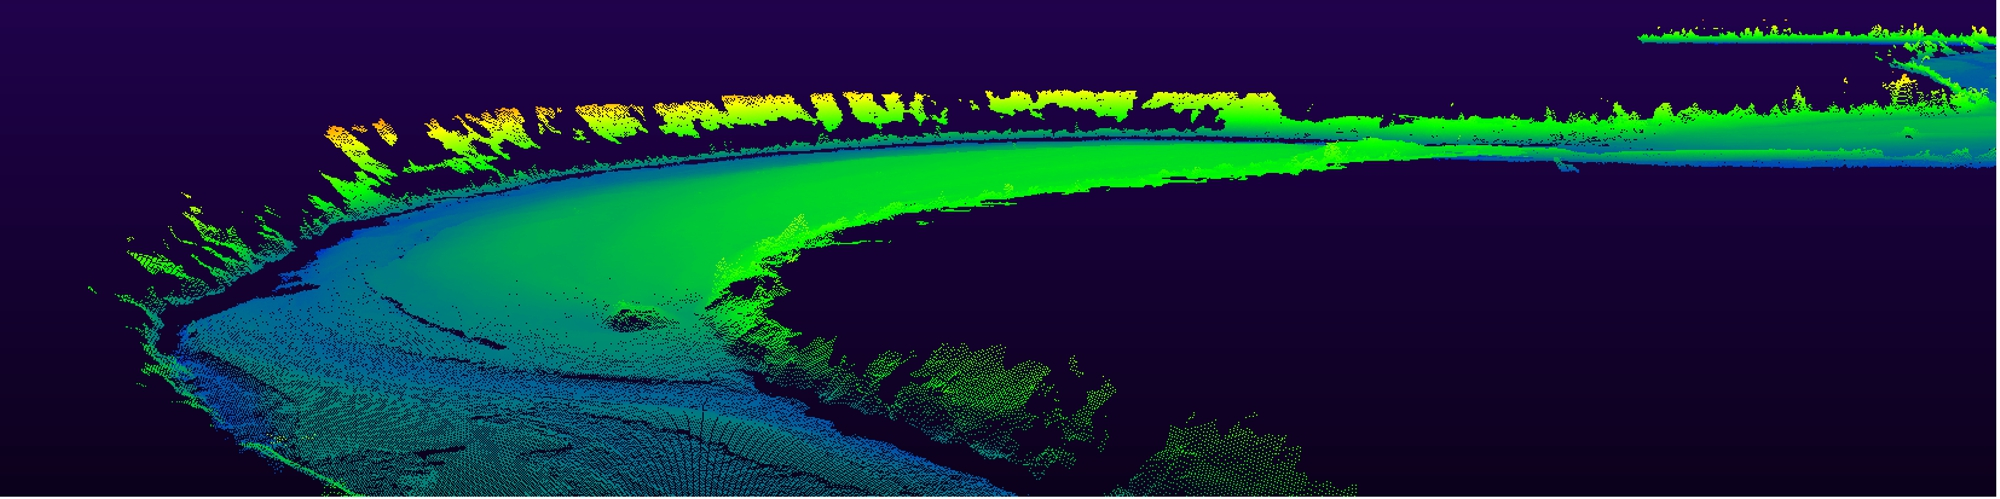 Point cloud from the Pulmankijoki River in Finnish Lapland by the University of Turku  Fluvial and Coastal Research Group.